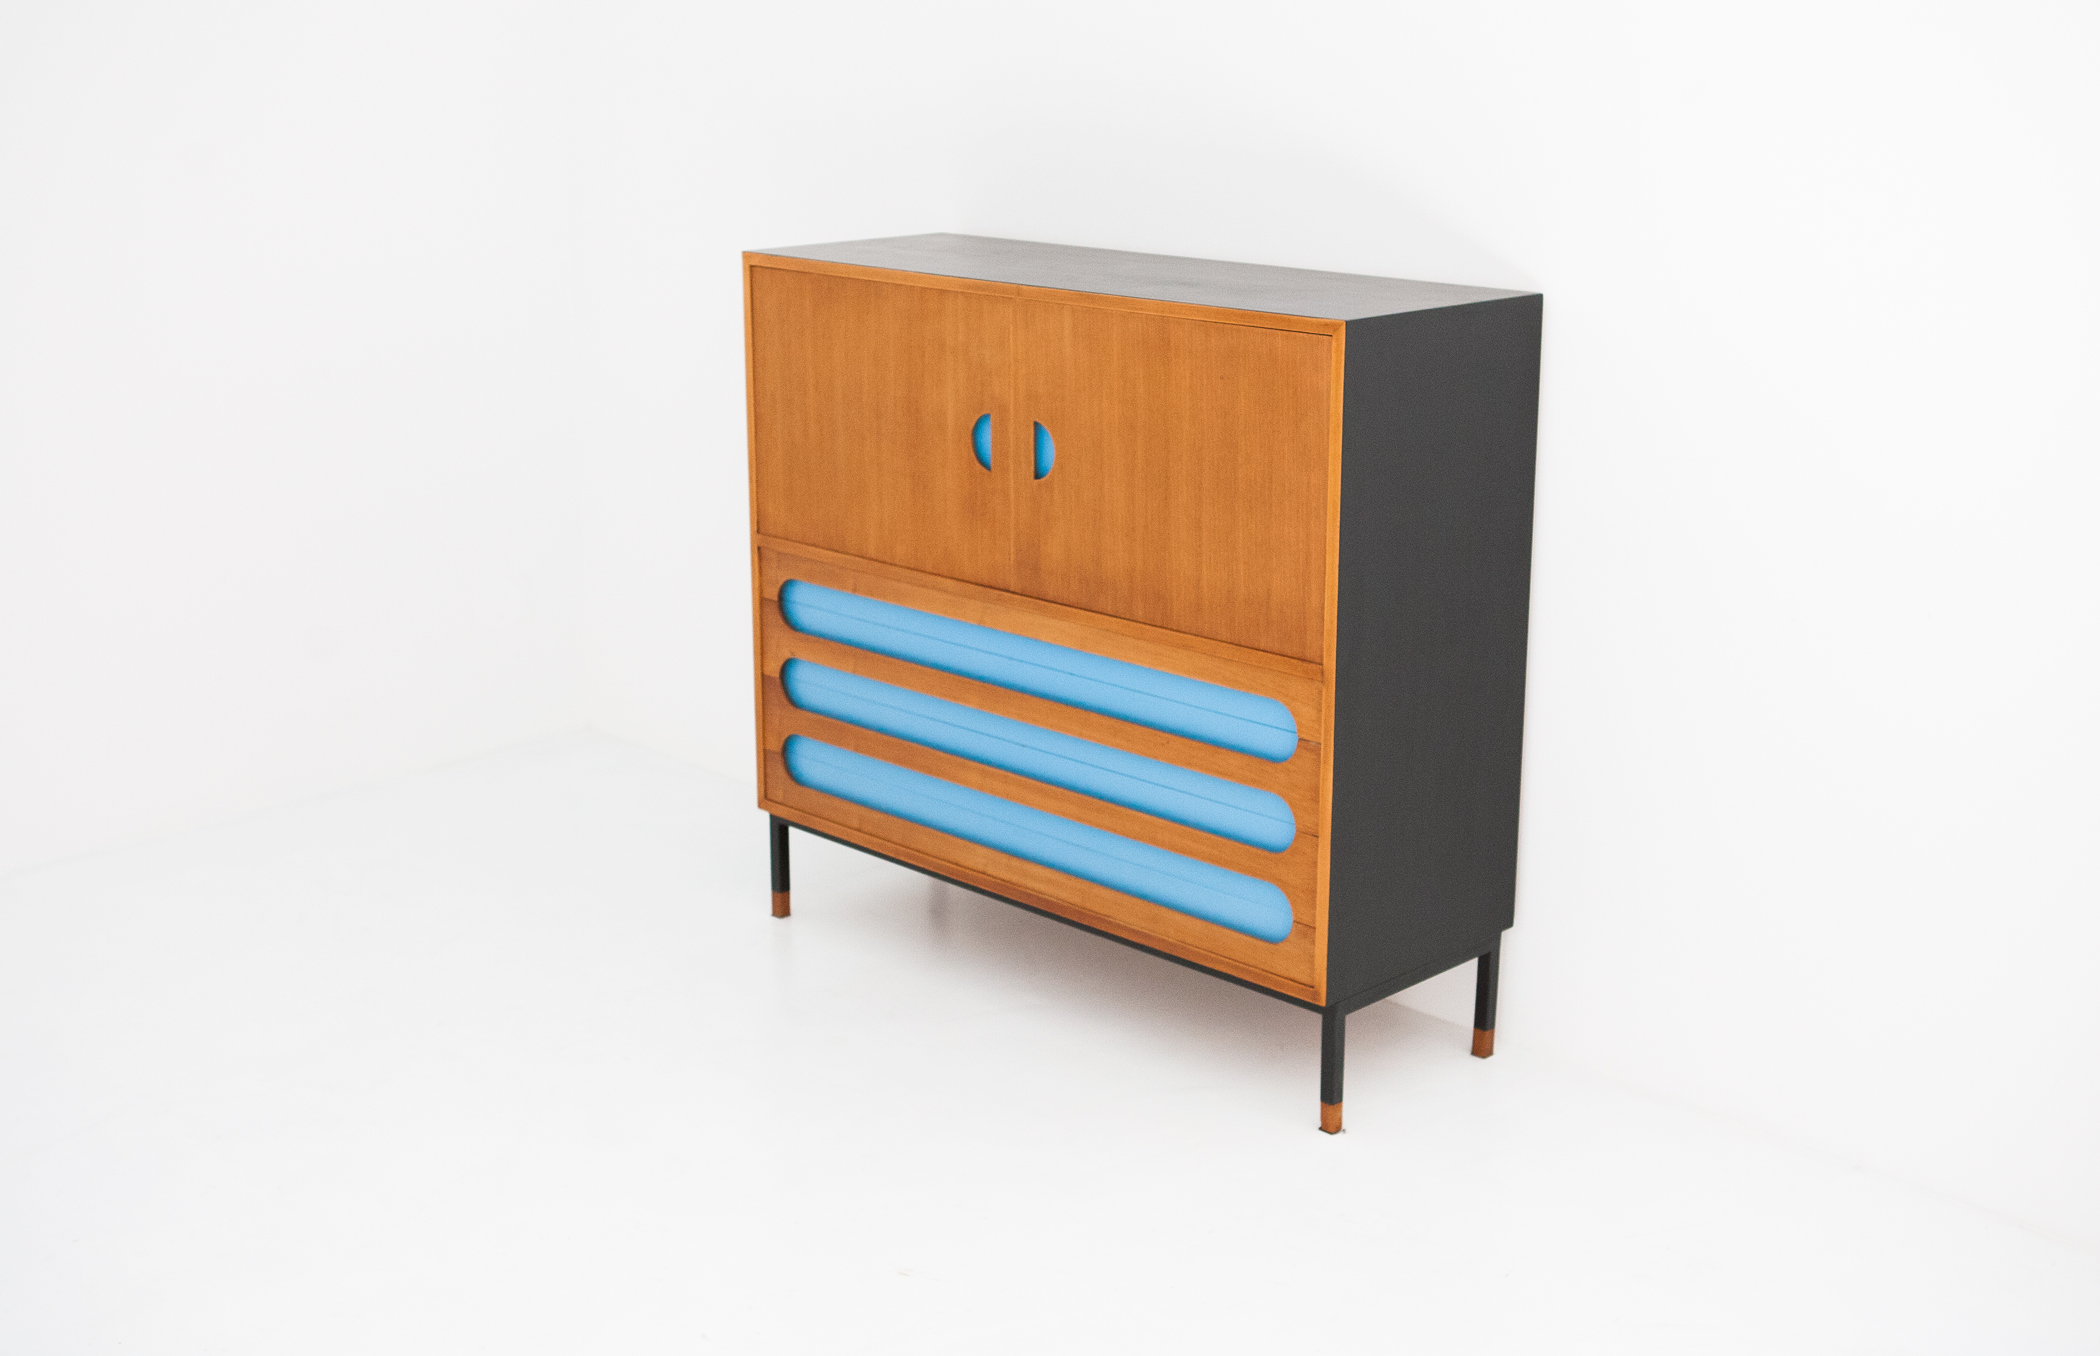 Sideboard 78 2 retro4m for Sideboard 2 m breit